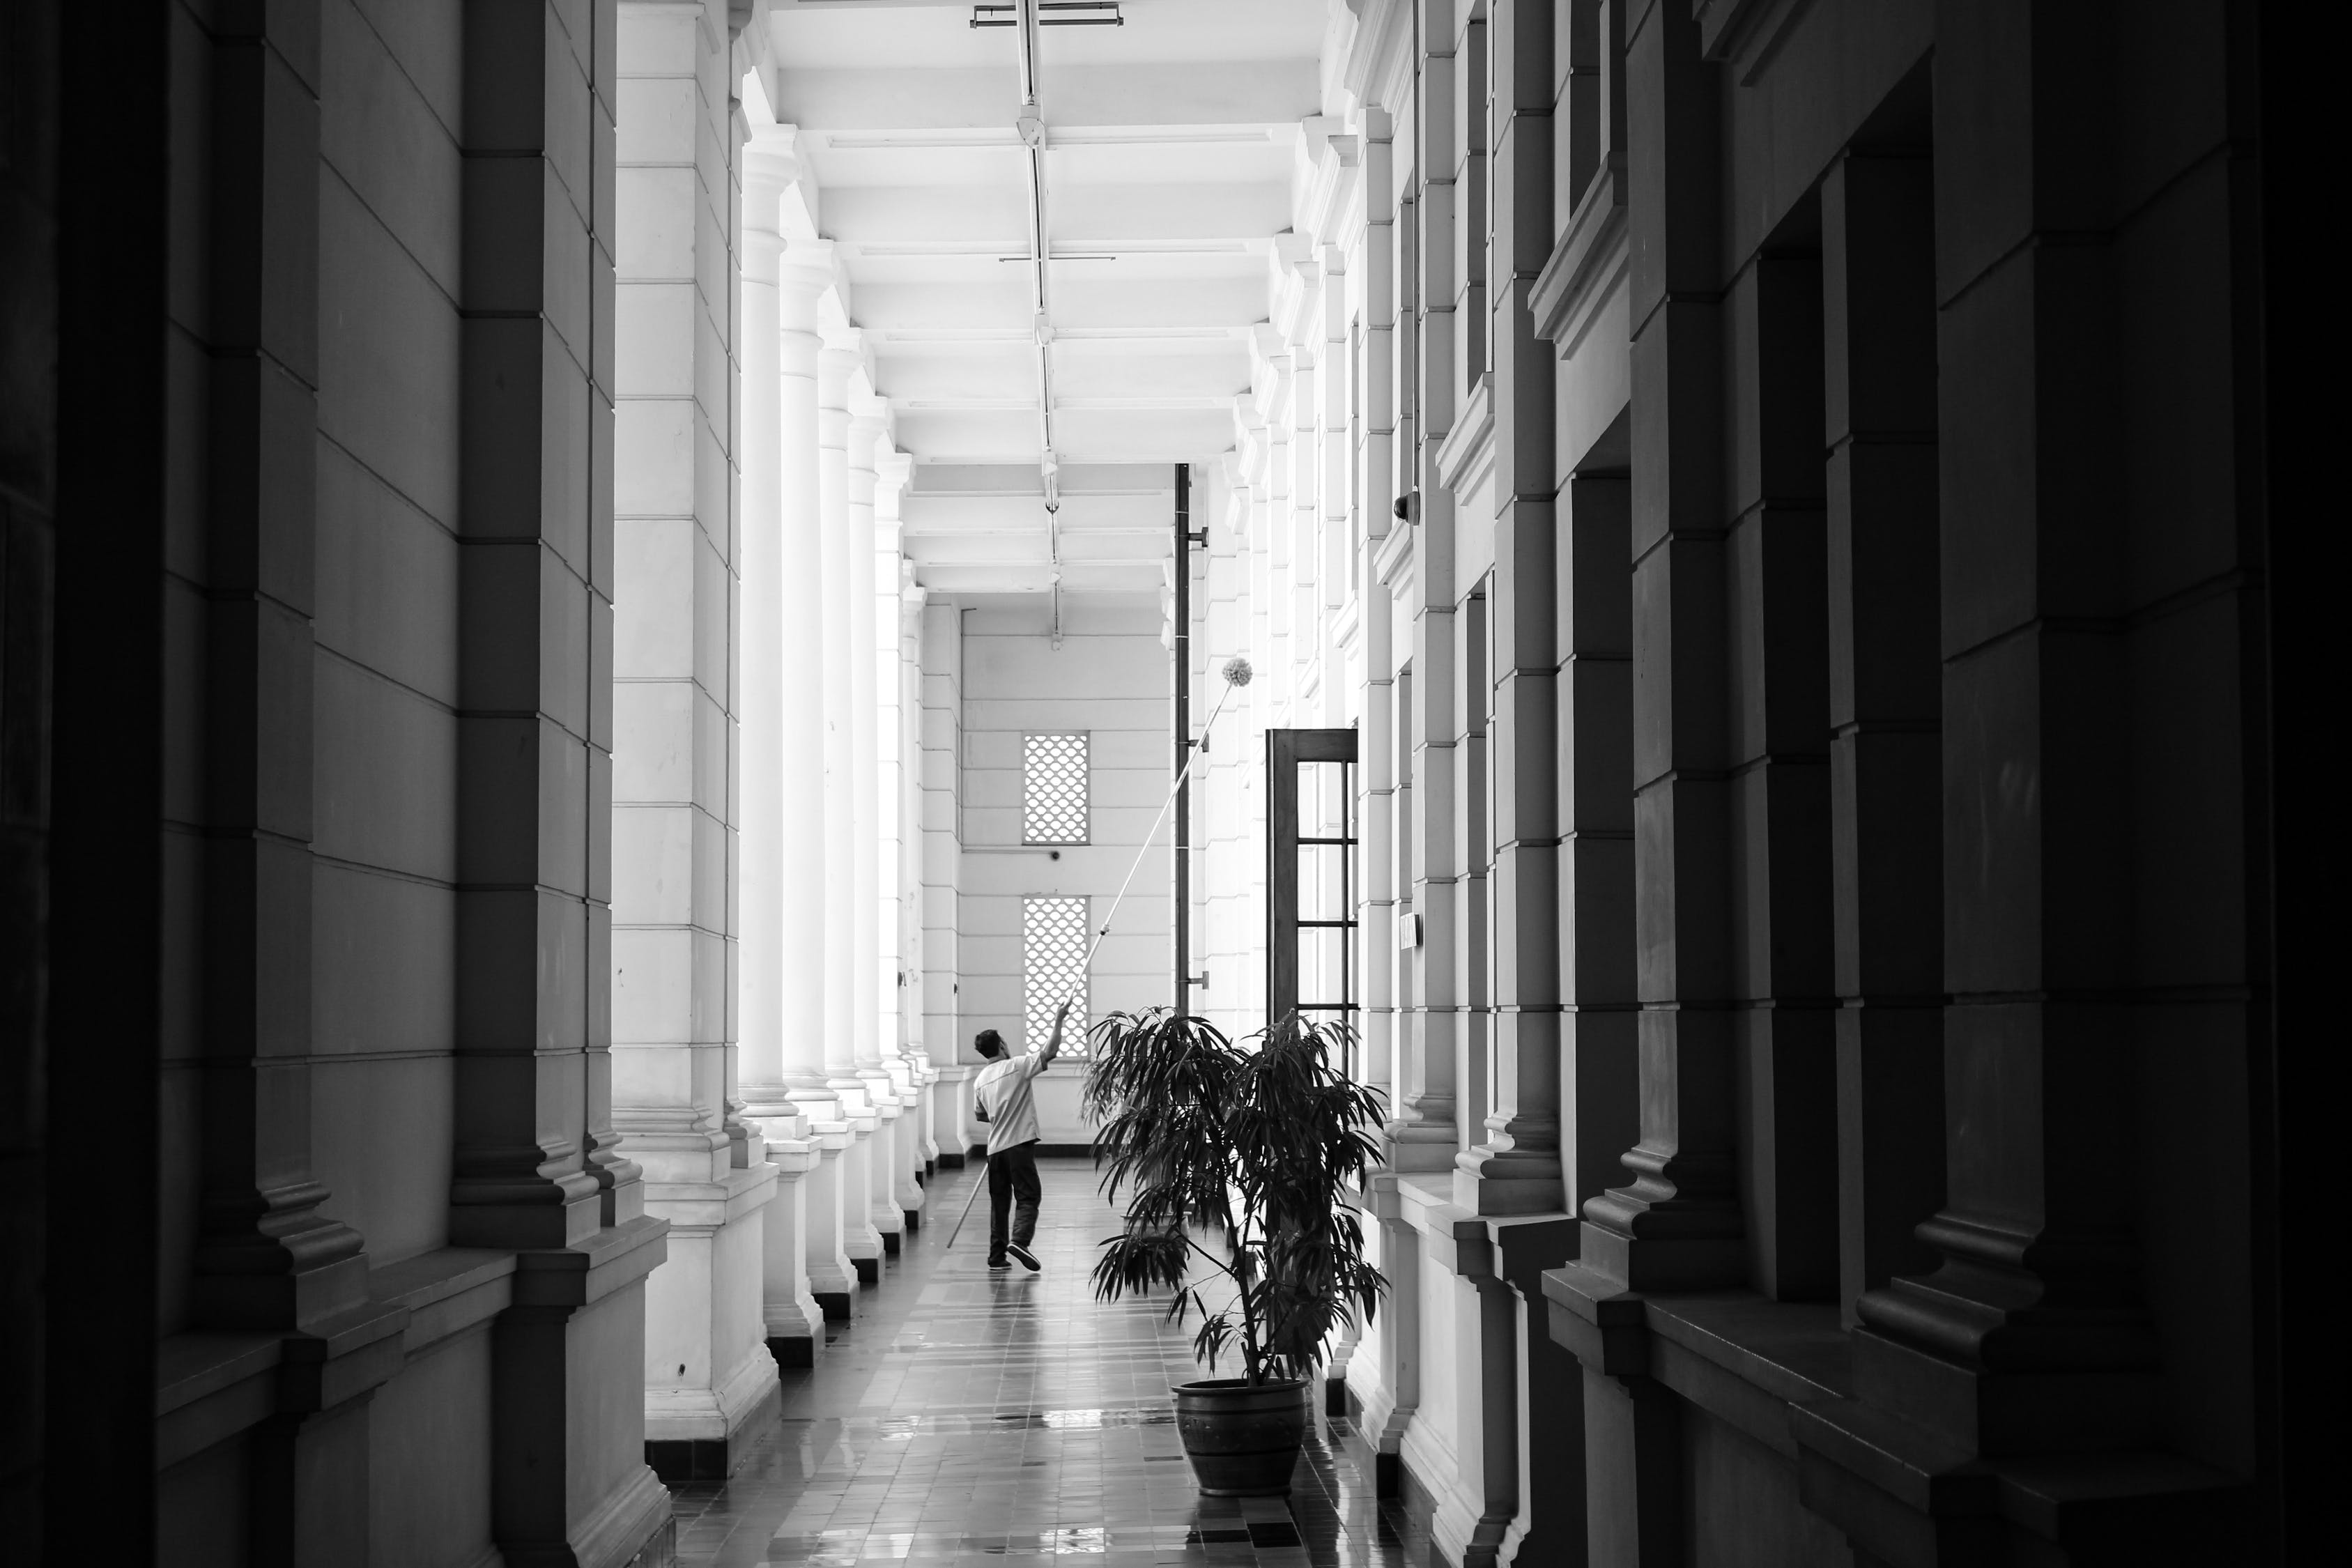 Grayscale Photo of Person Walking on Corridor